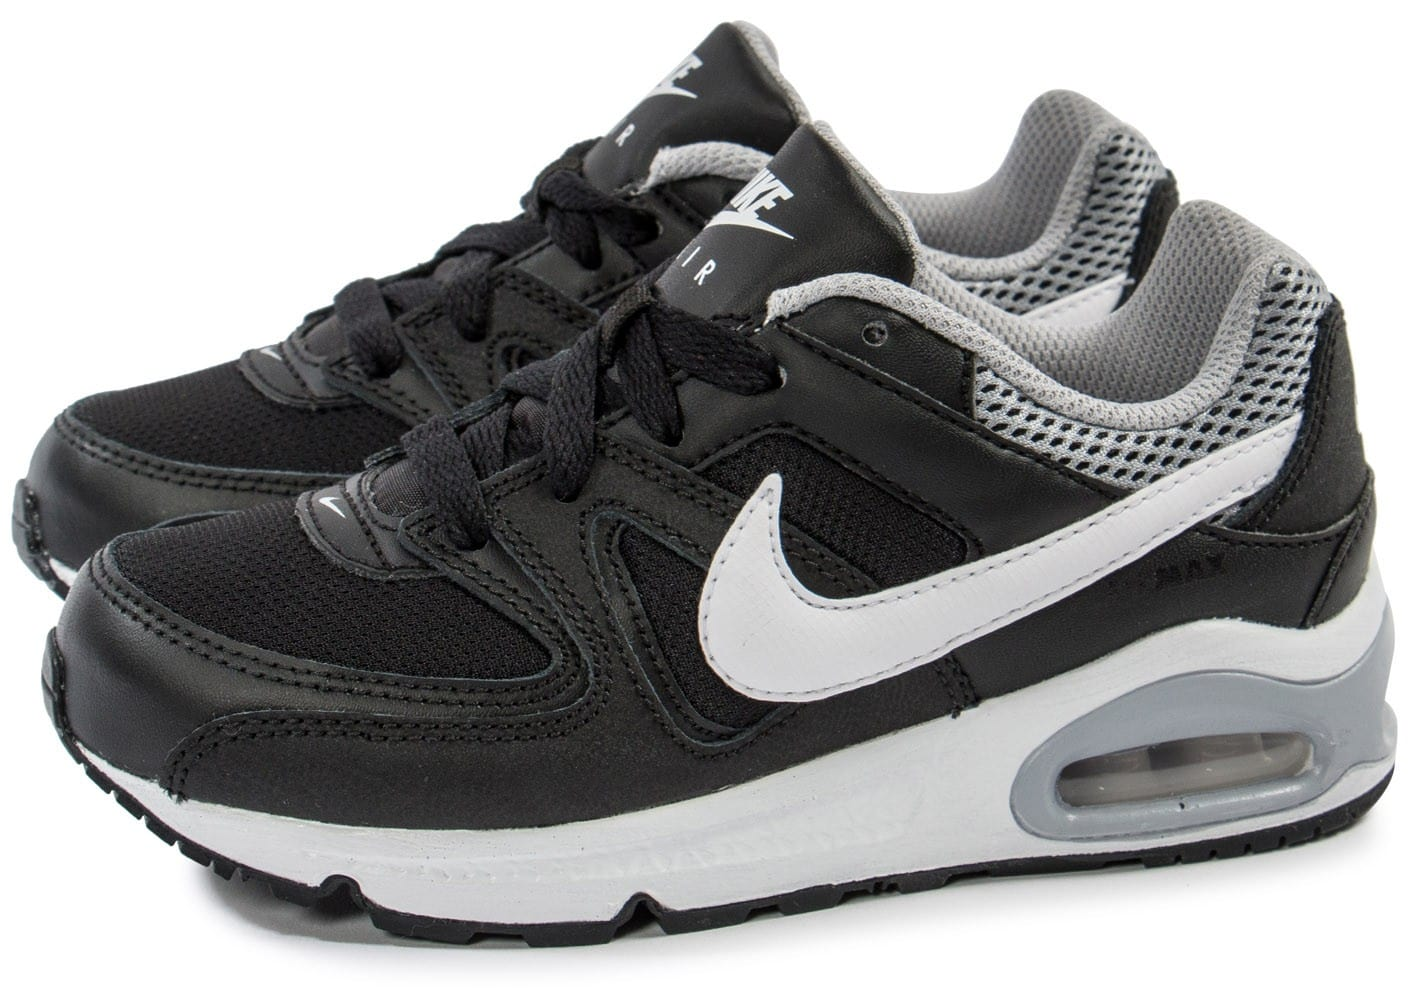 nike air max command enfant cuir noir chaussures chaussures chausport. Black Bedroom Furniture Sets. Home Design Ideas